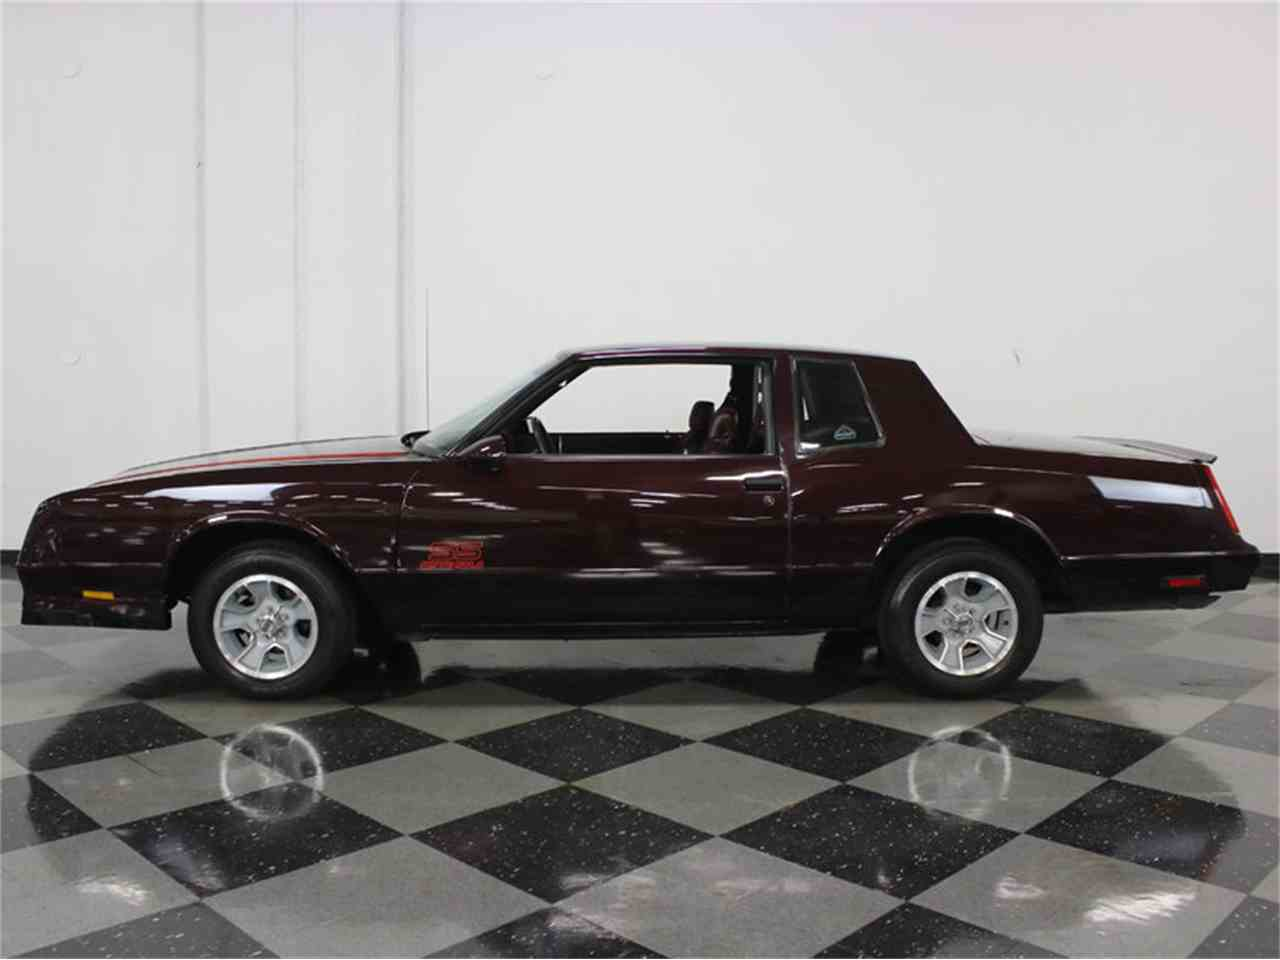 All Chevy 1988 chevrolet monte carlo ss for sale : 1988 Chevrolet Monte Carlo SS for Sale | ClassicCars.com | CC-924731